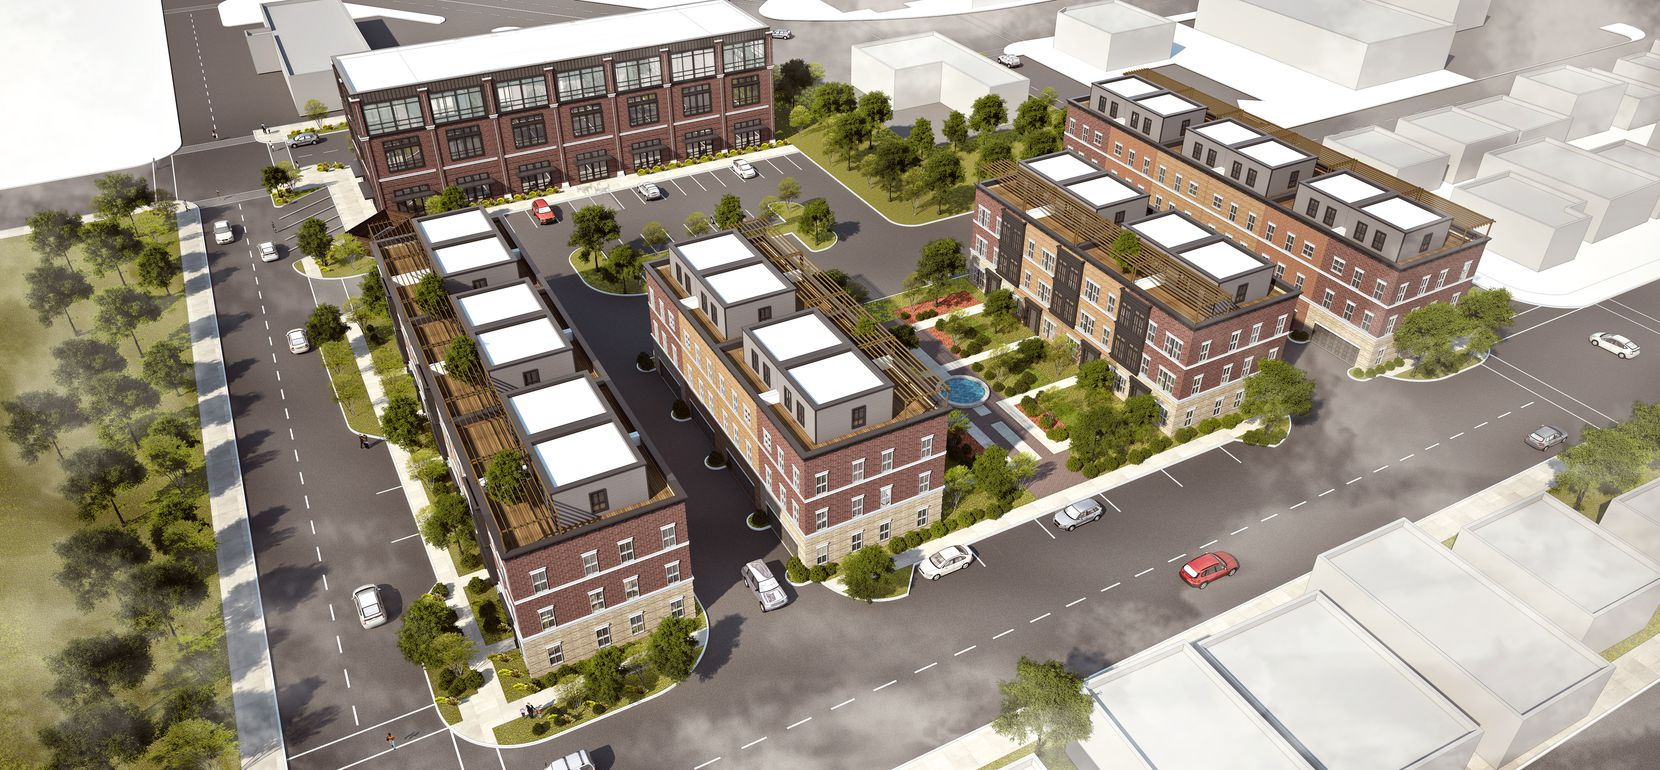 Nack Development's planned Calaboose mixed-use project in downtown Frisco.